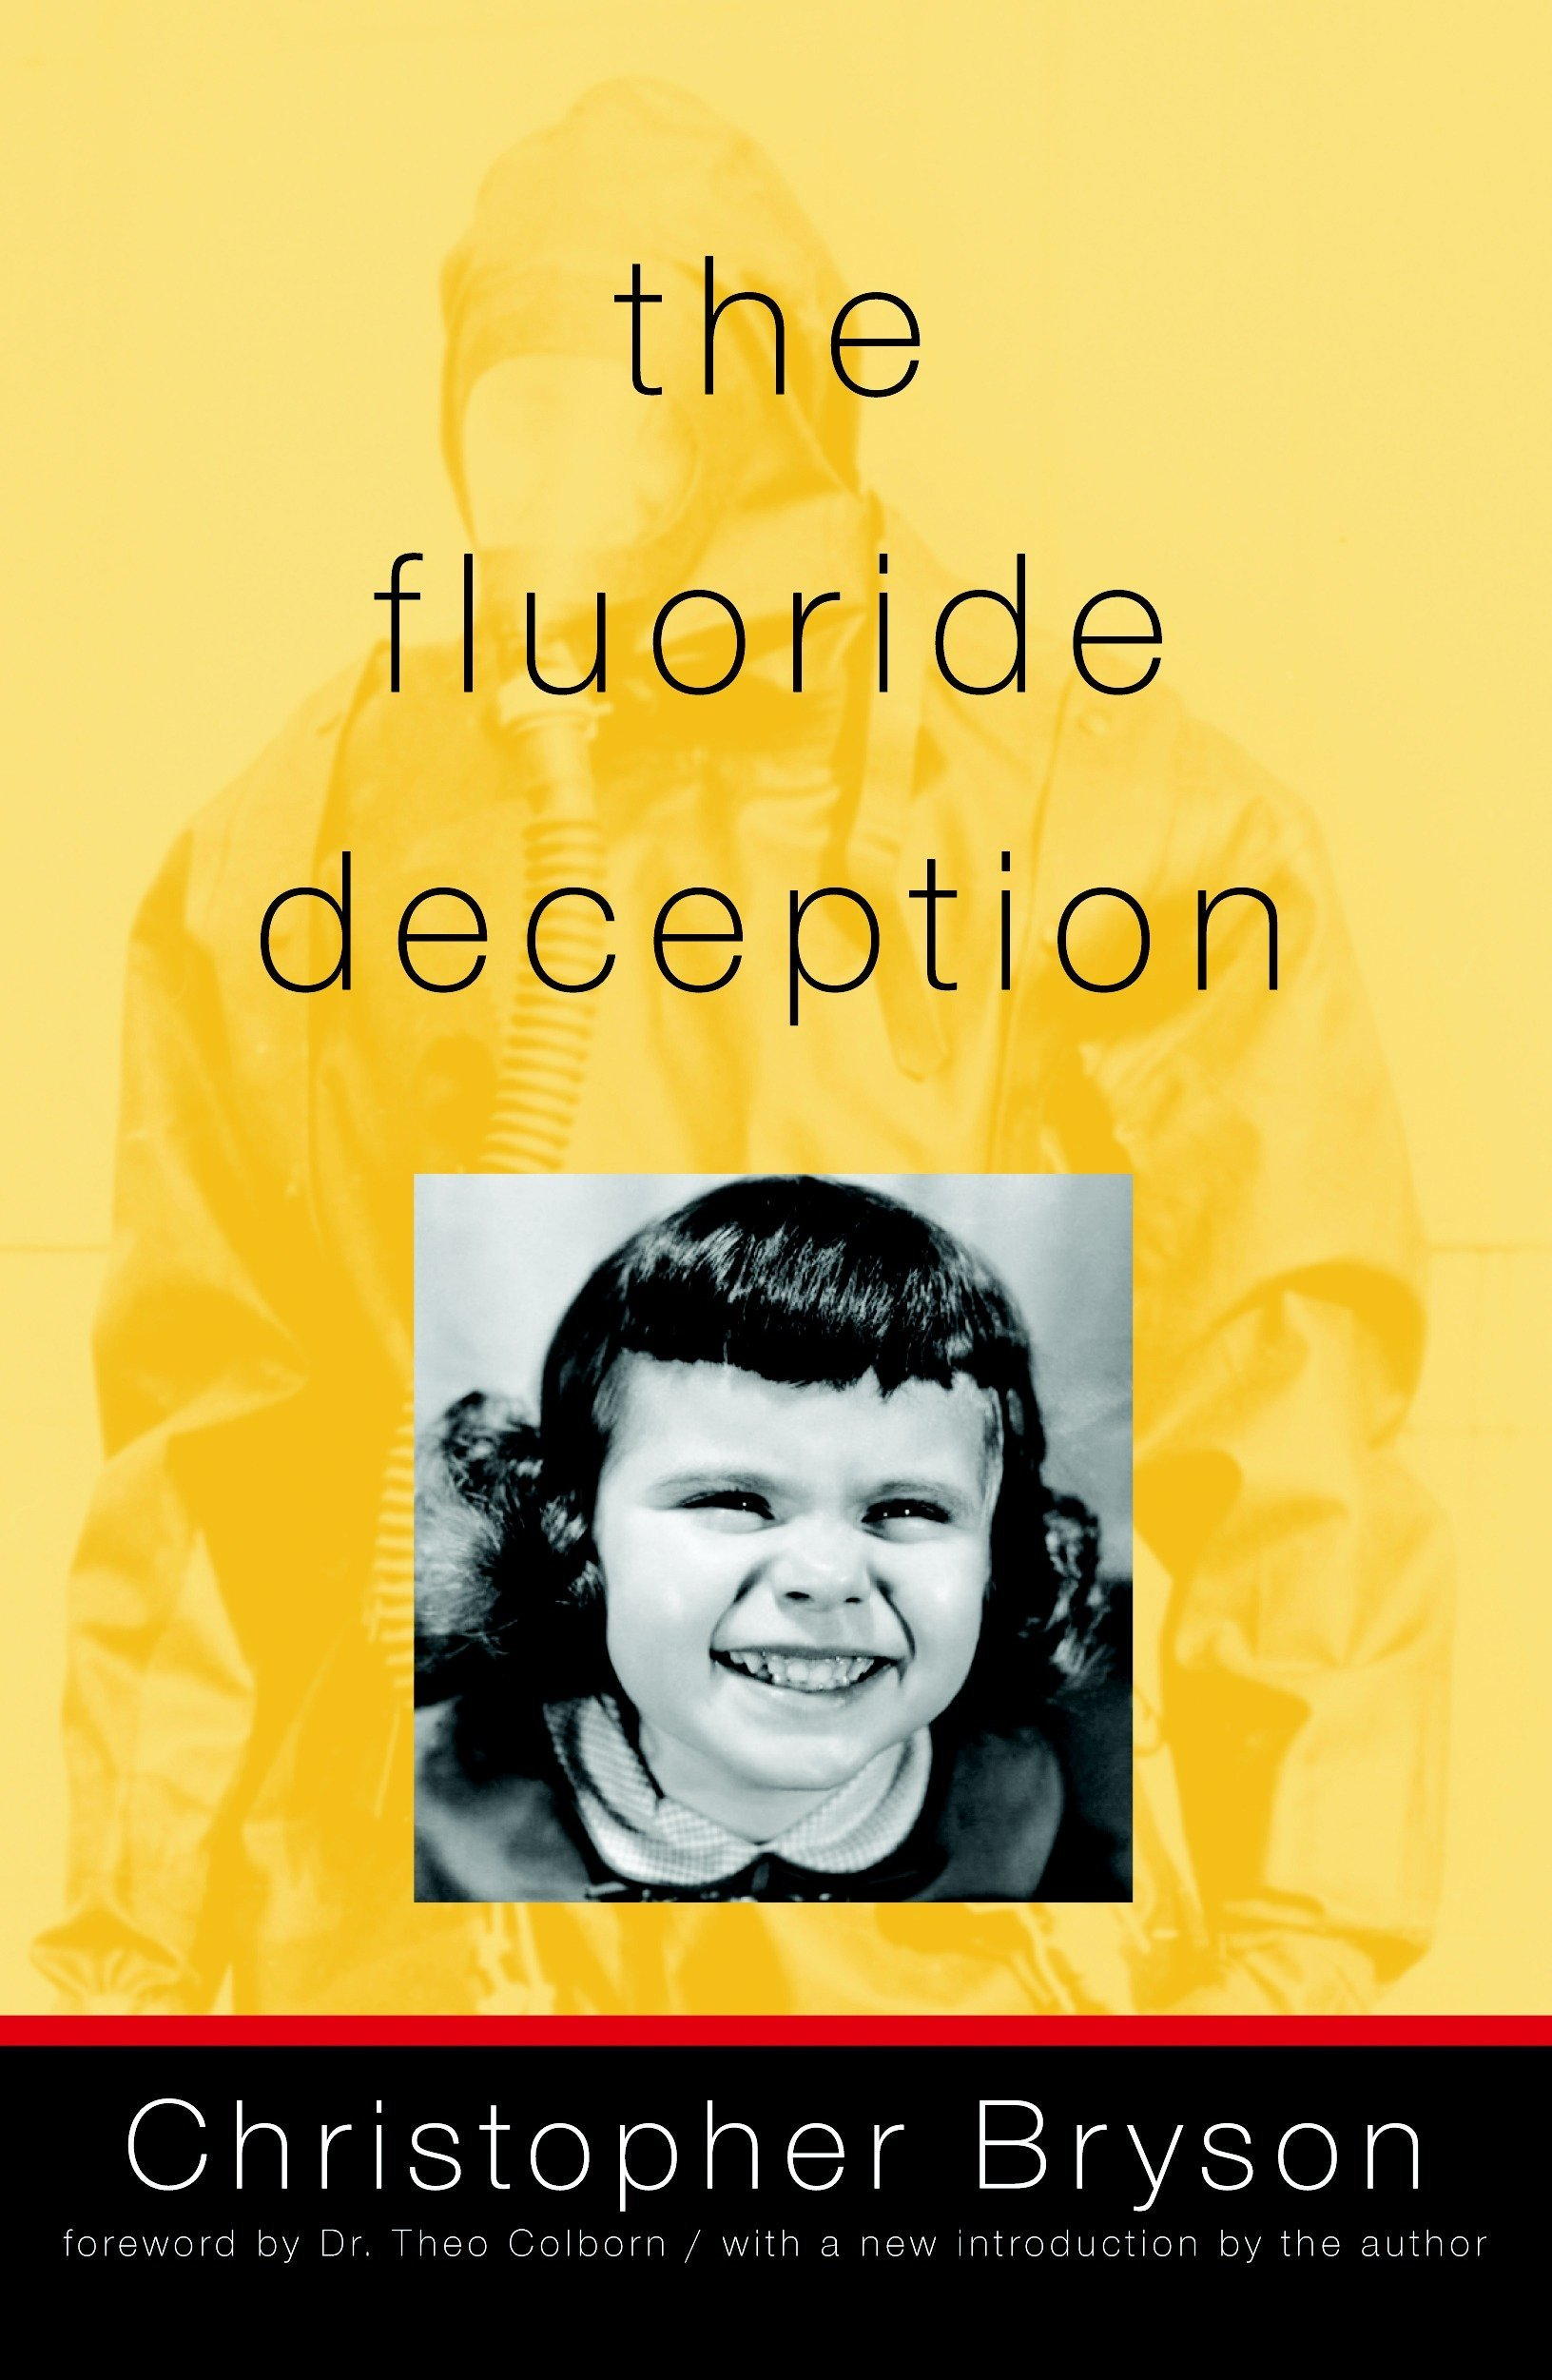 the flouride deception